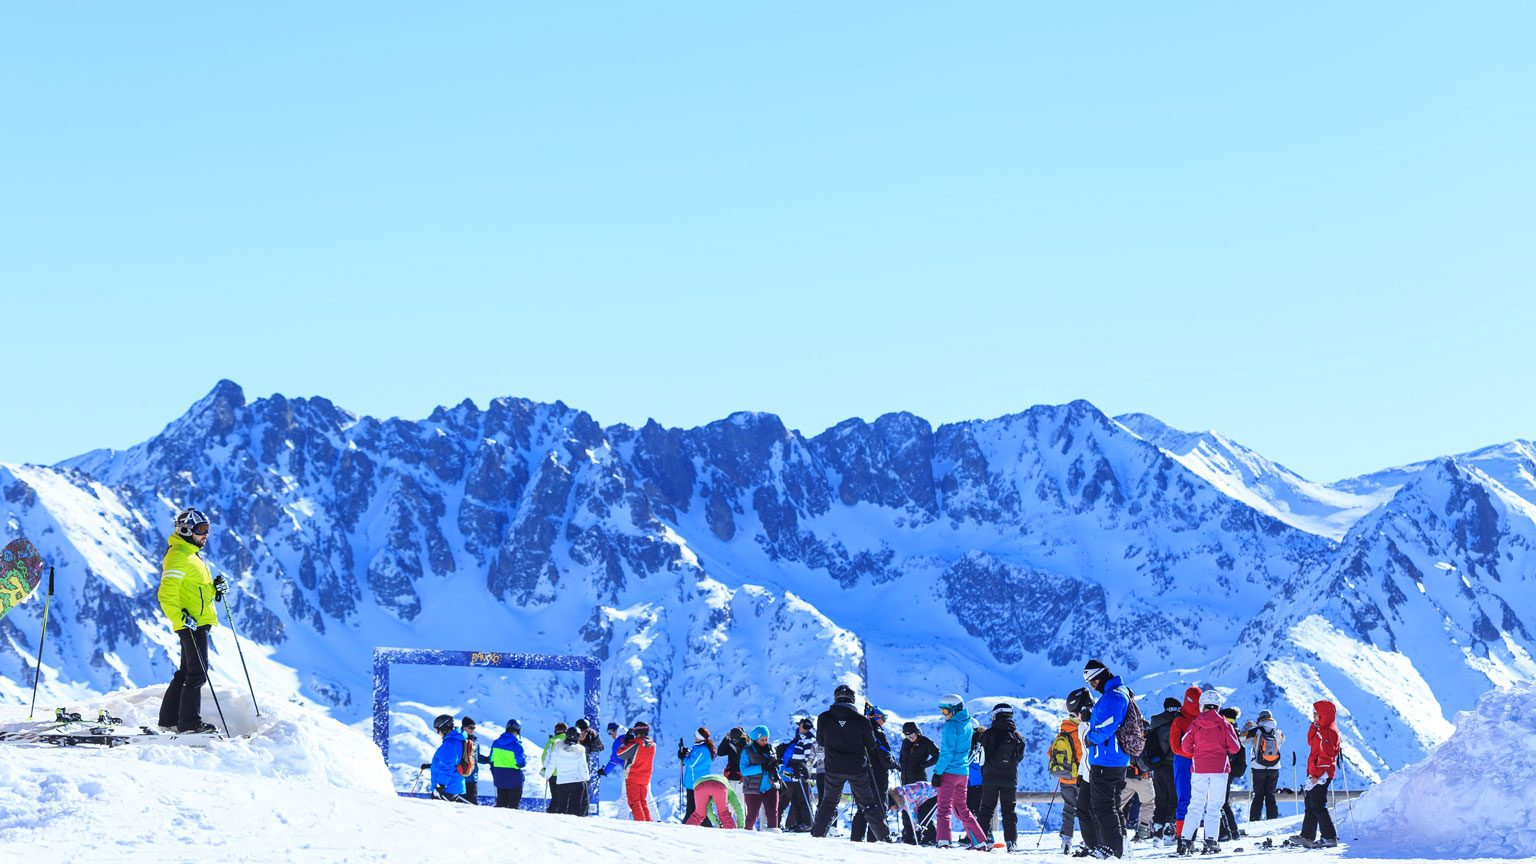 Ski resort tourists in Bansko, Bulgaria